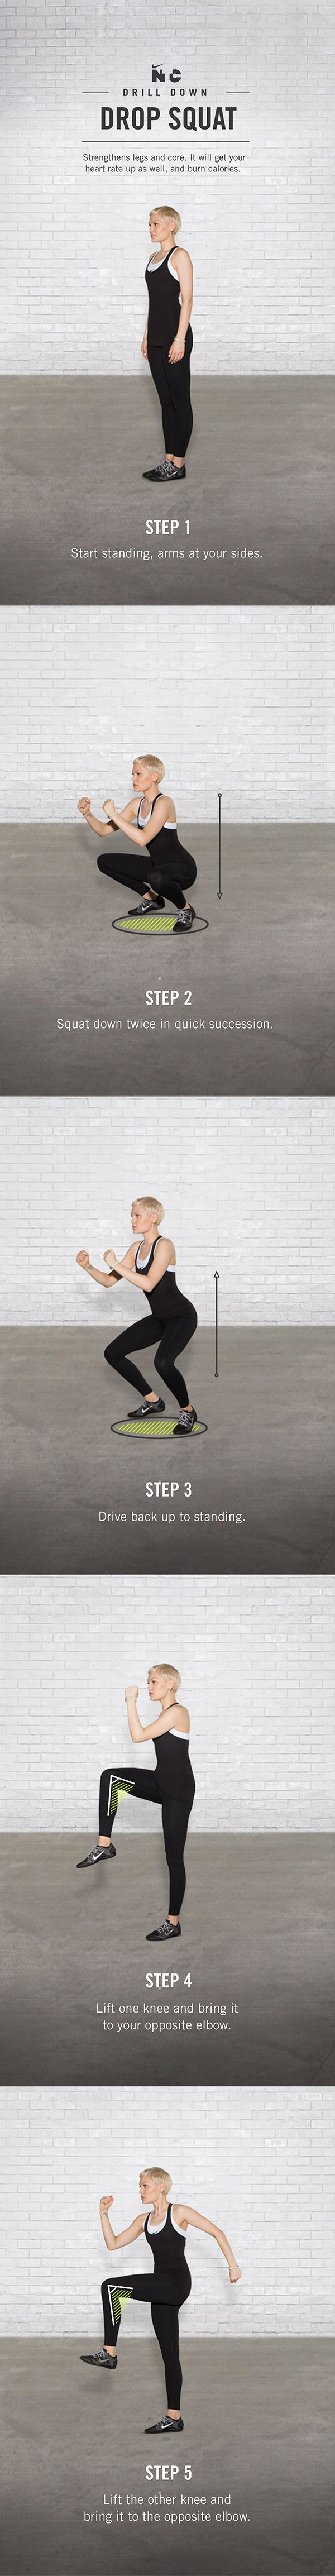 Drop Squat #nike #train #ntc #drills